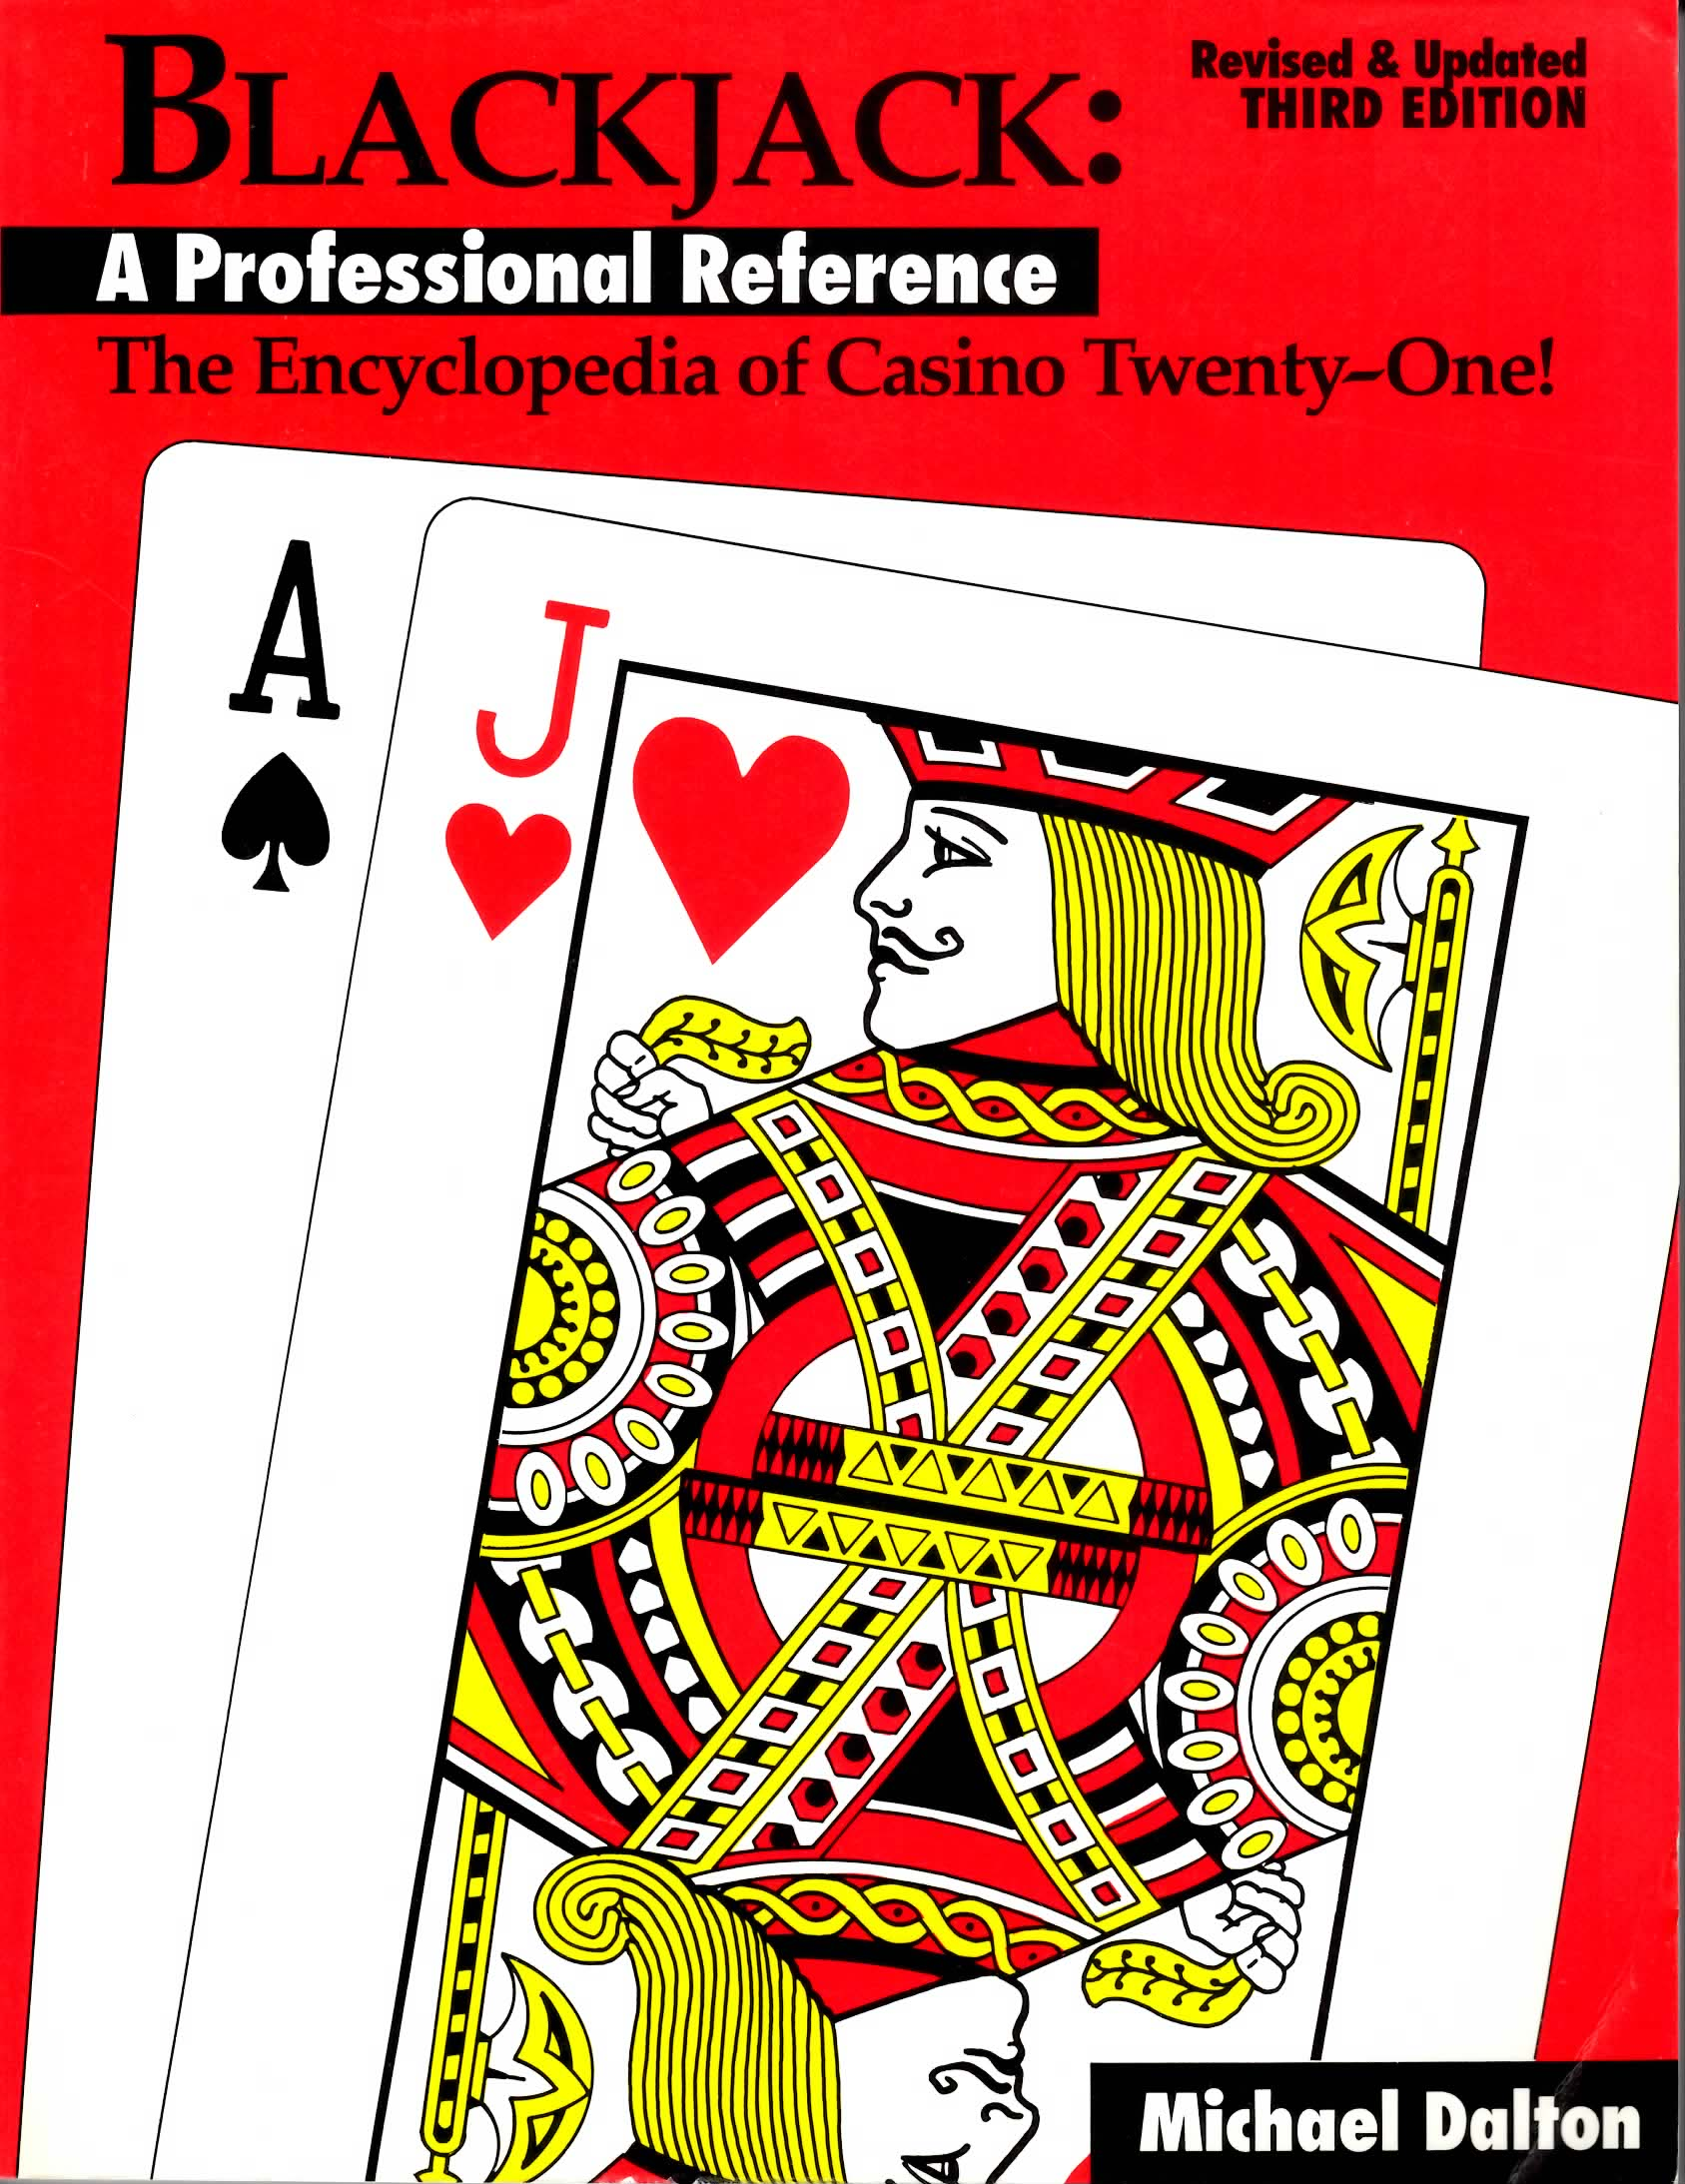 Encyclopedia of Casino Twenty-One (Blackjack)